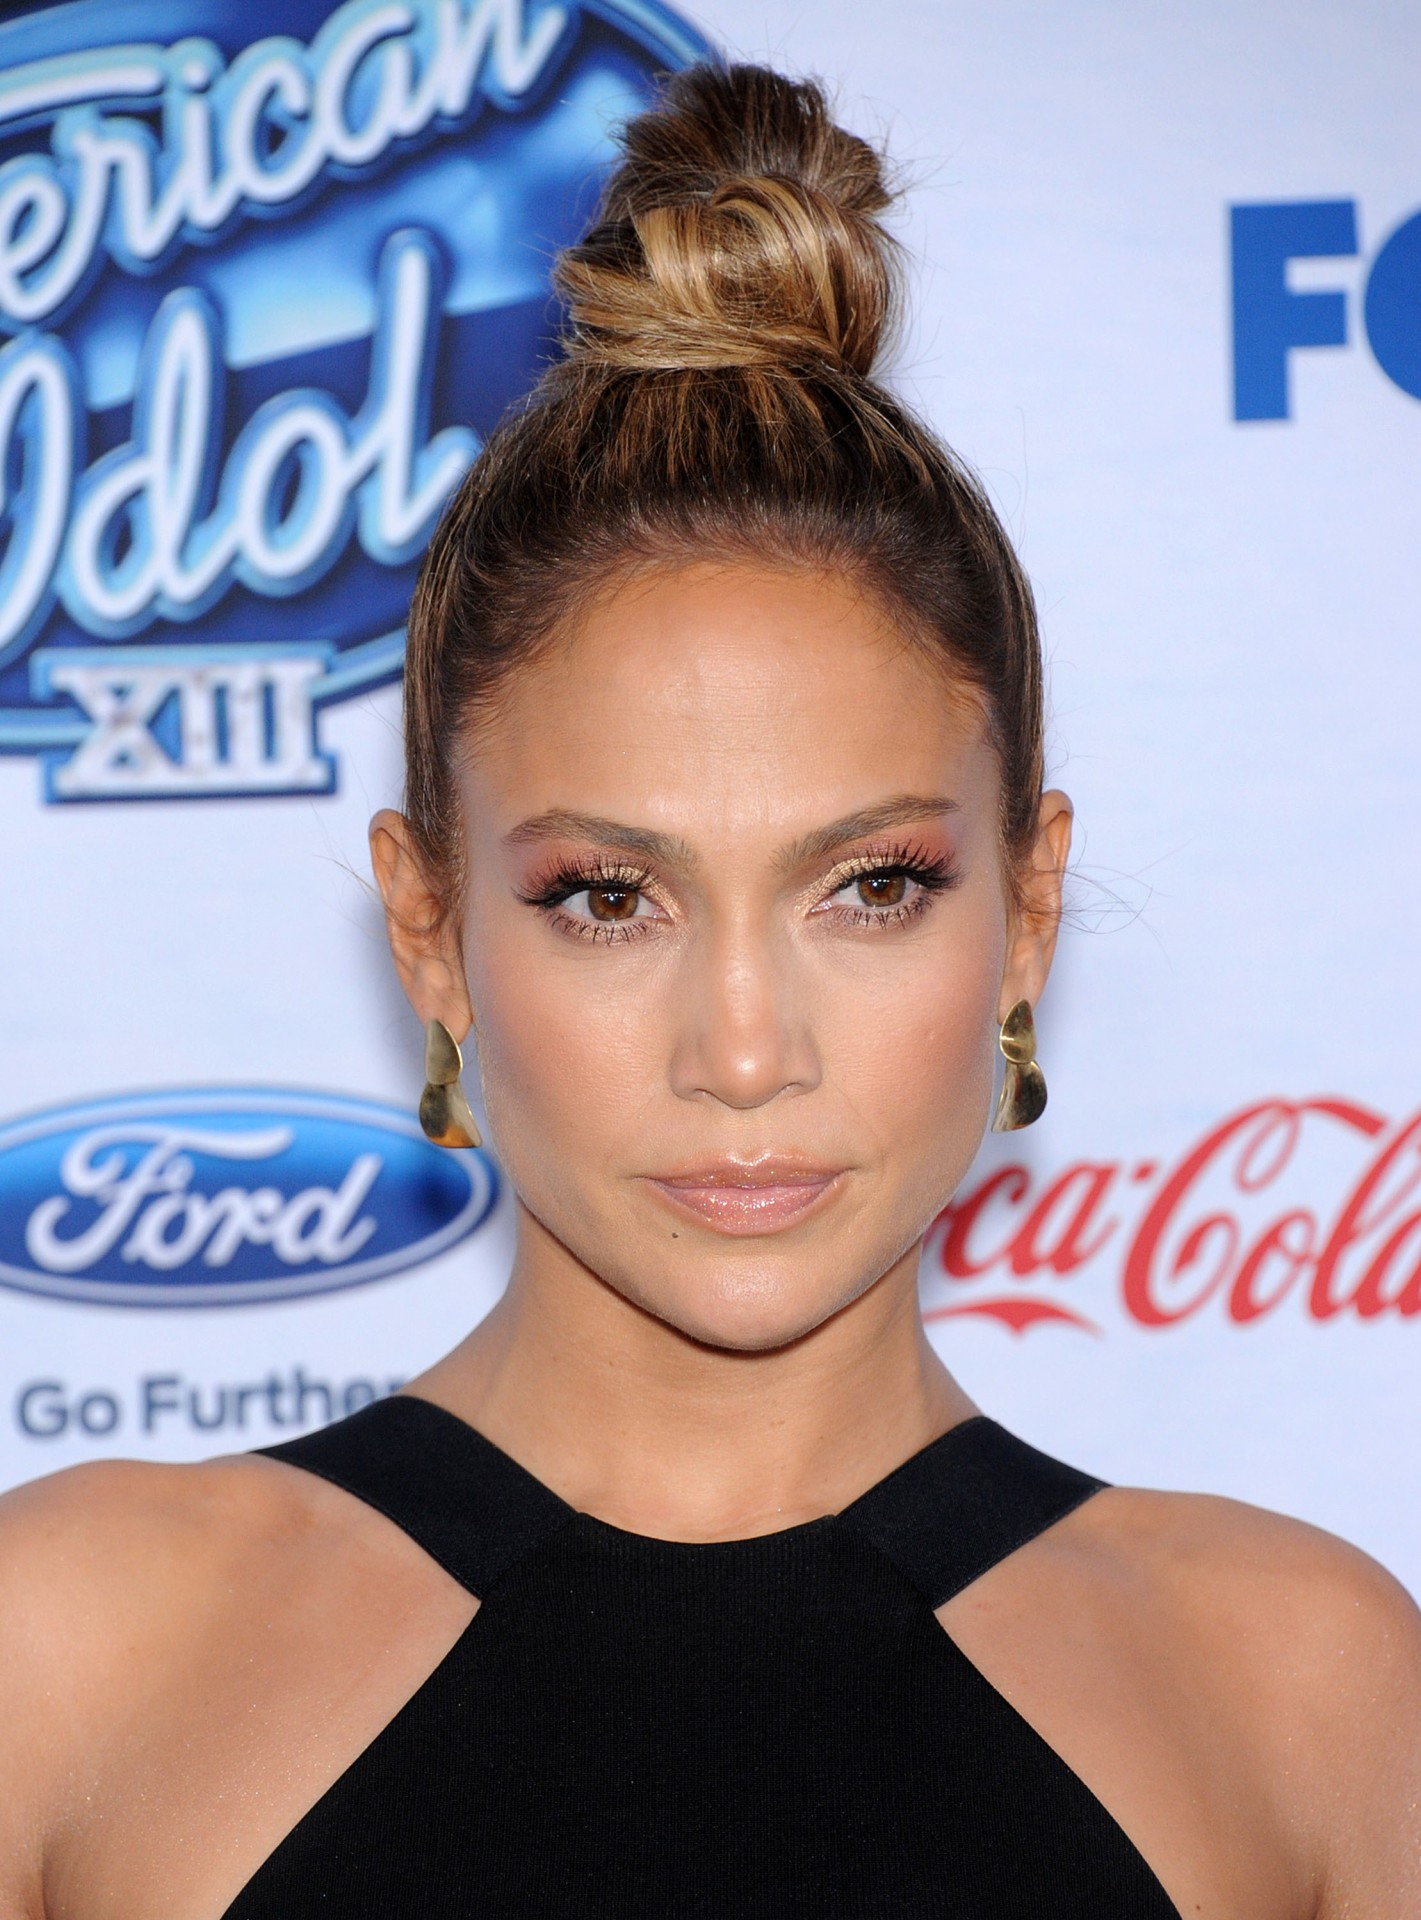 If you got 'em, flaunt 'em! JLO knows how to put her lashes to work!